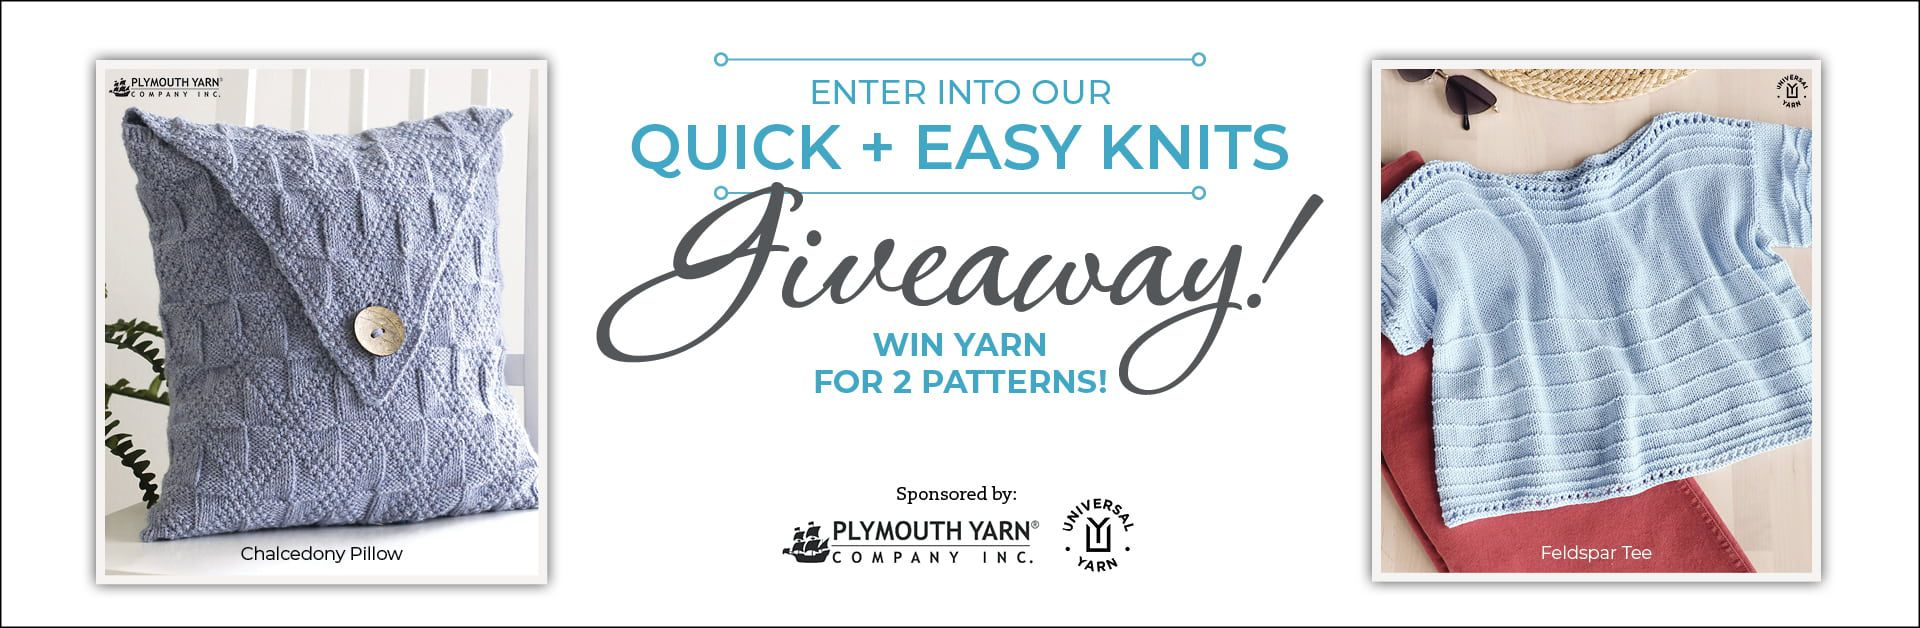 Quick + Easy Knits Giveaway banner